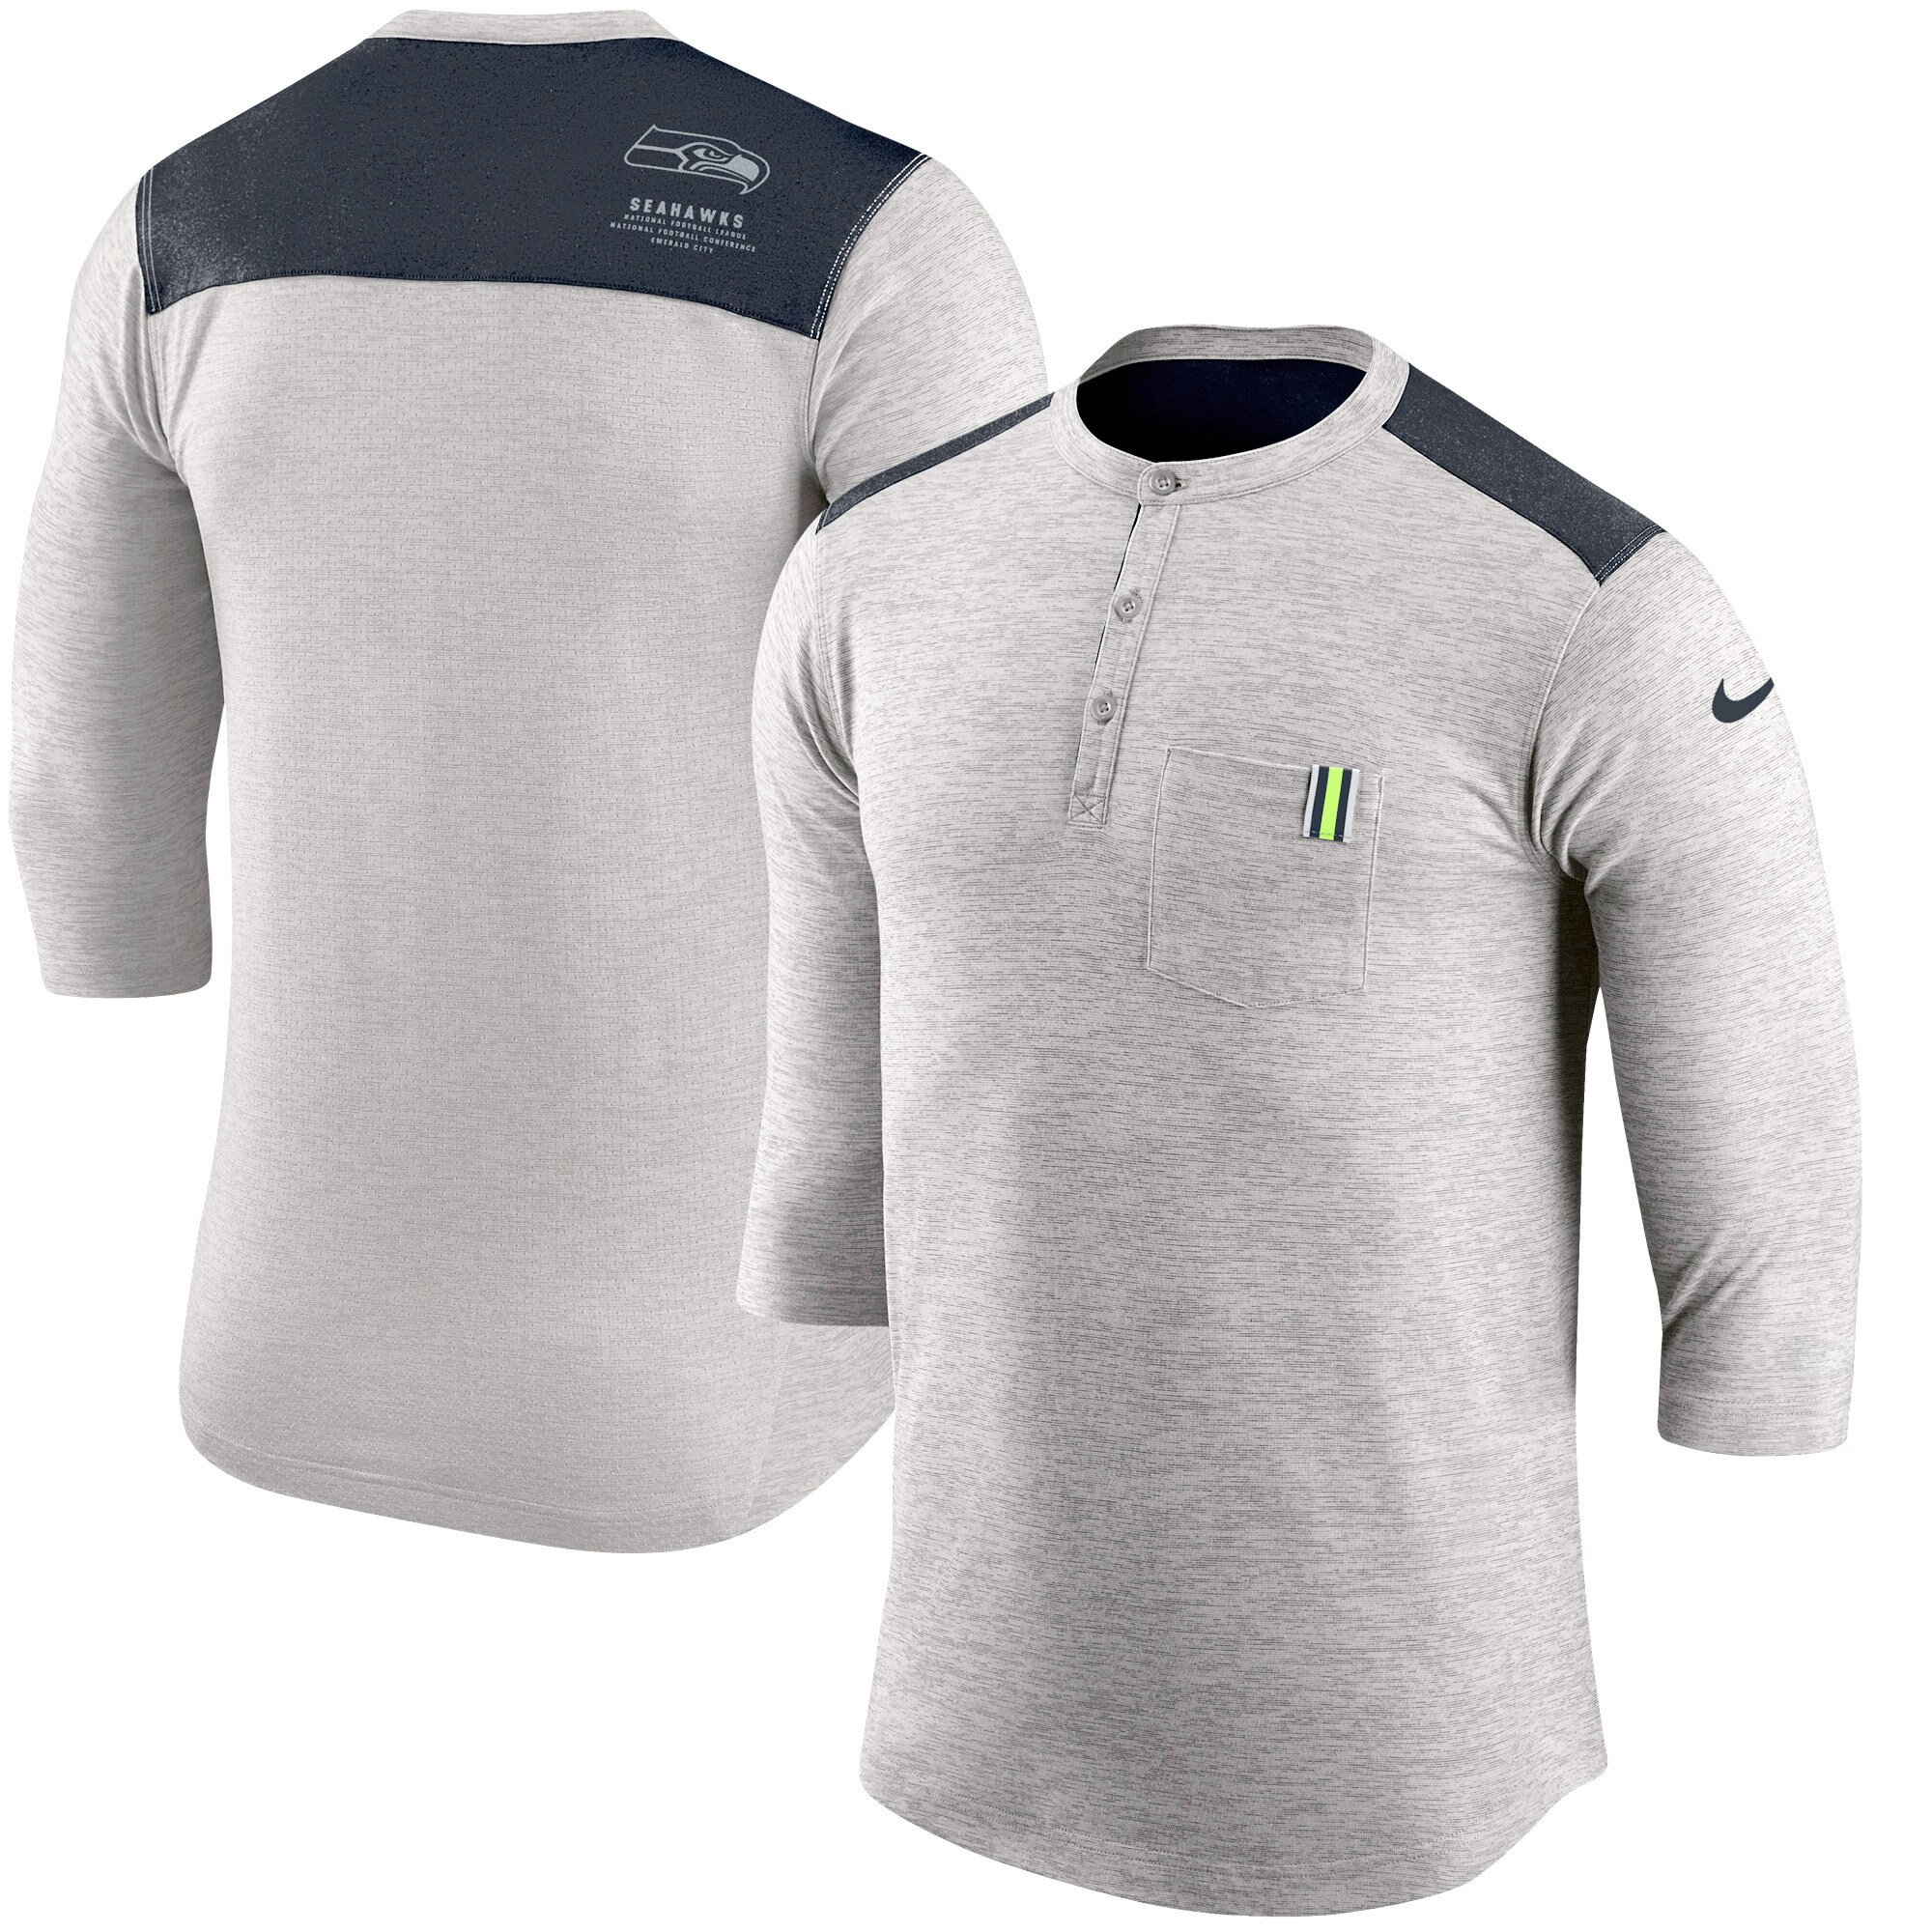 Seattle Seahawks Nike Performance Henley 3/4-Sleeve T-Shirt - Heathered Gray/College Navy